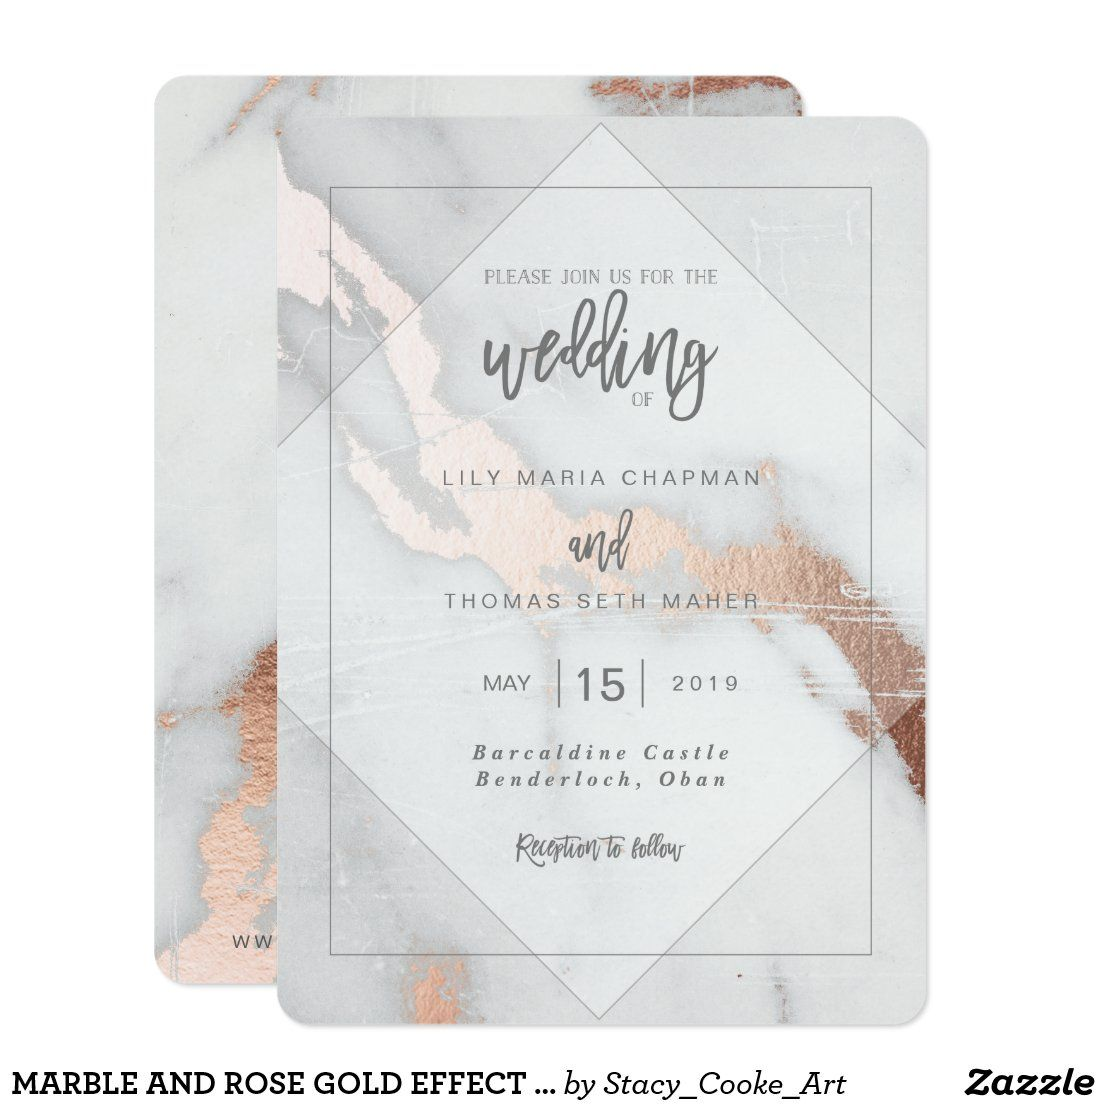 Marble And Rose Gold Effect Wedding Invitation Zazzle Com In 2020 Marble Invitation Wedding Wedding Invitations Foil Wedding Invitations